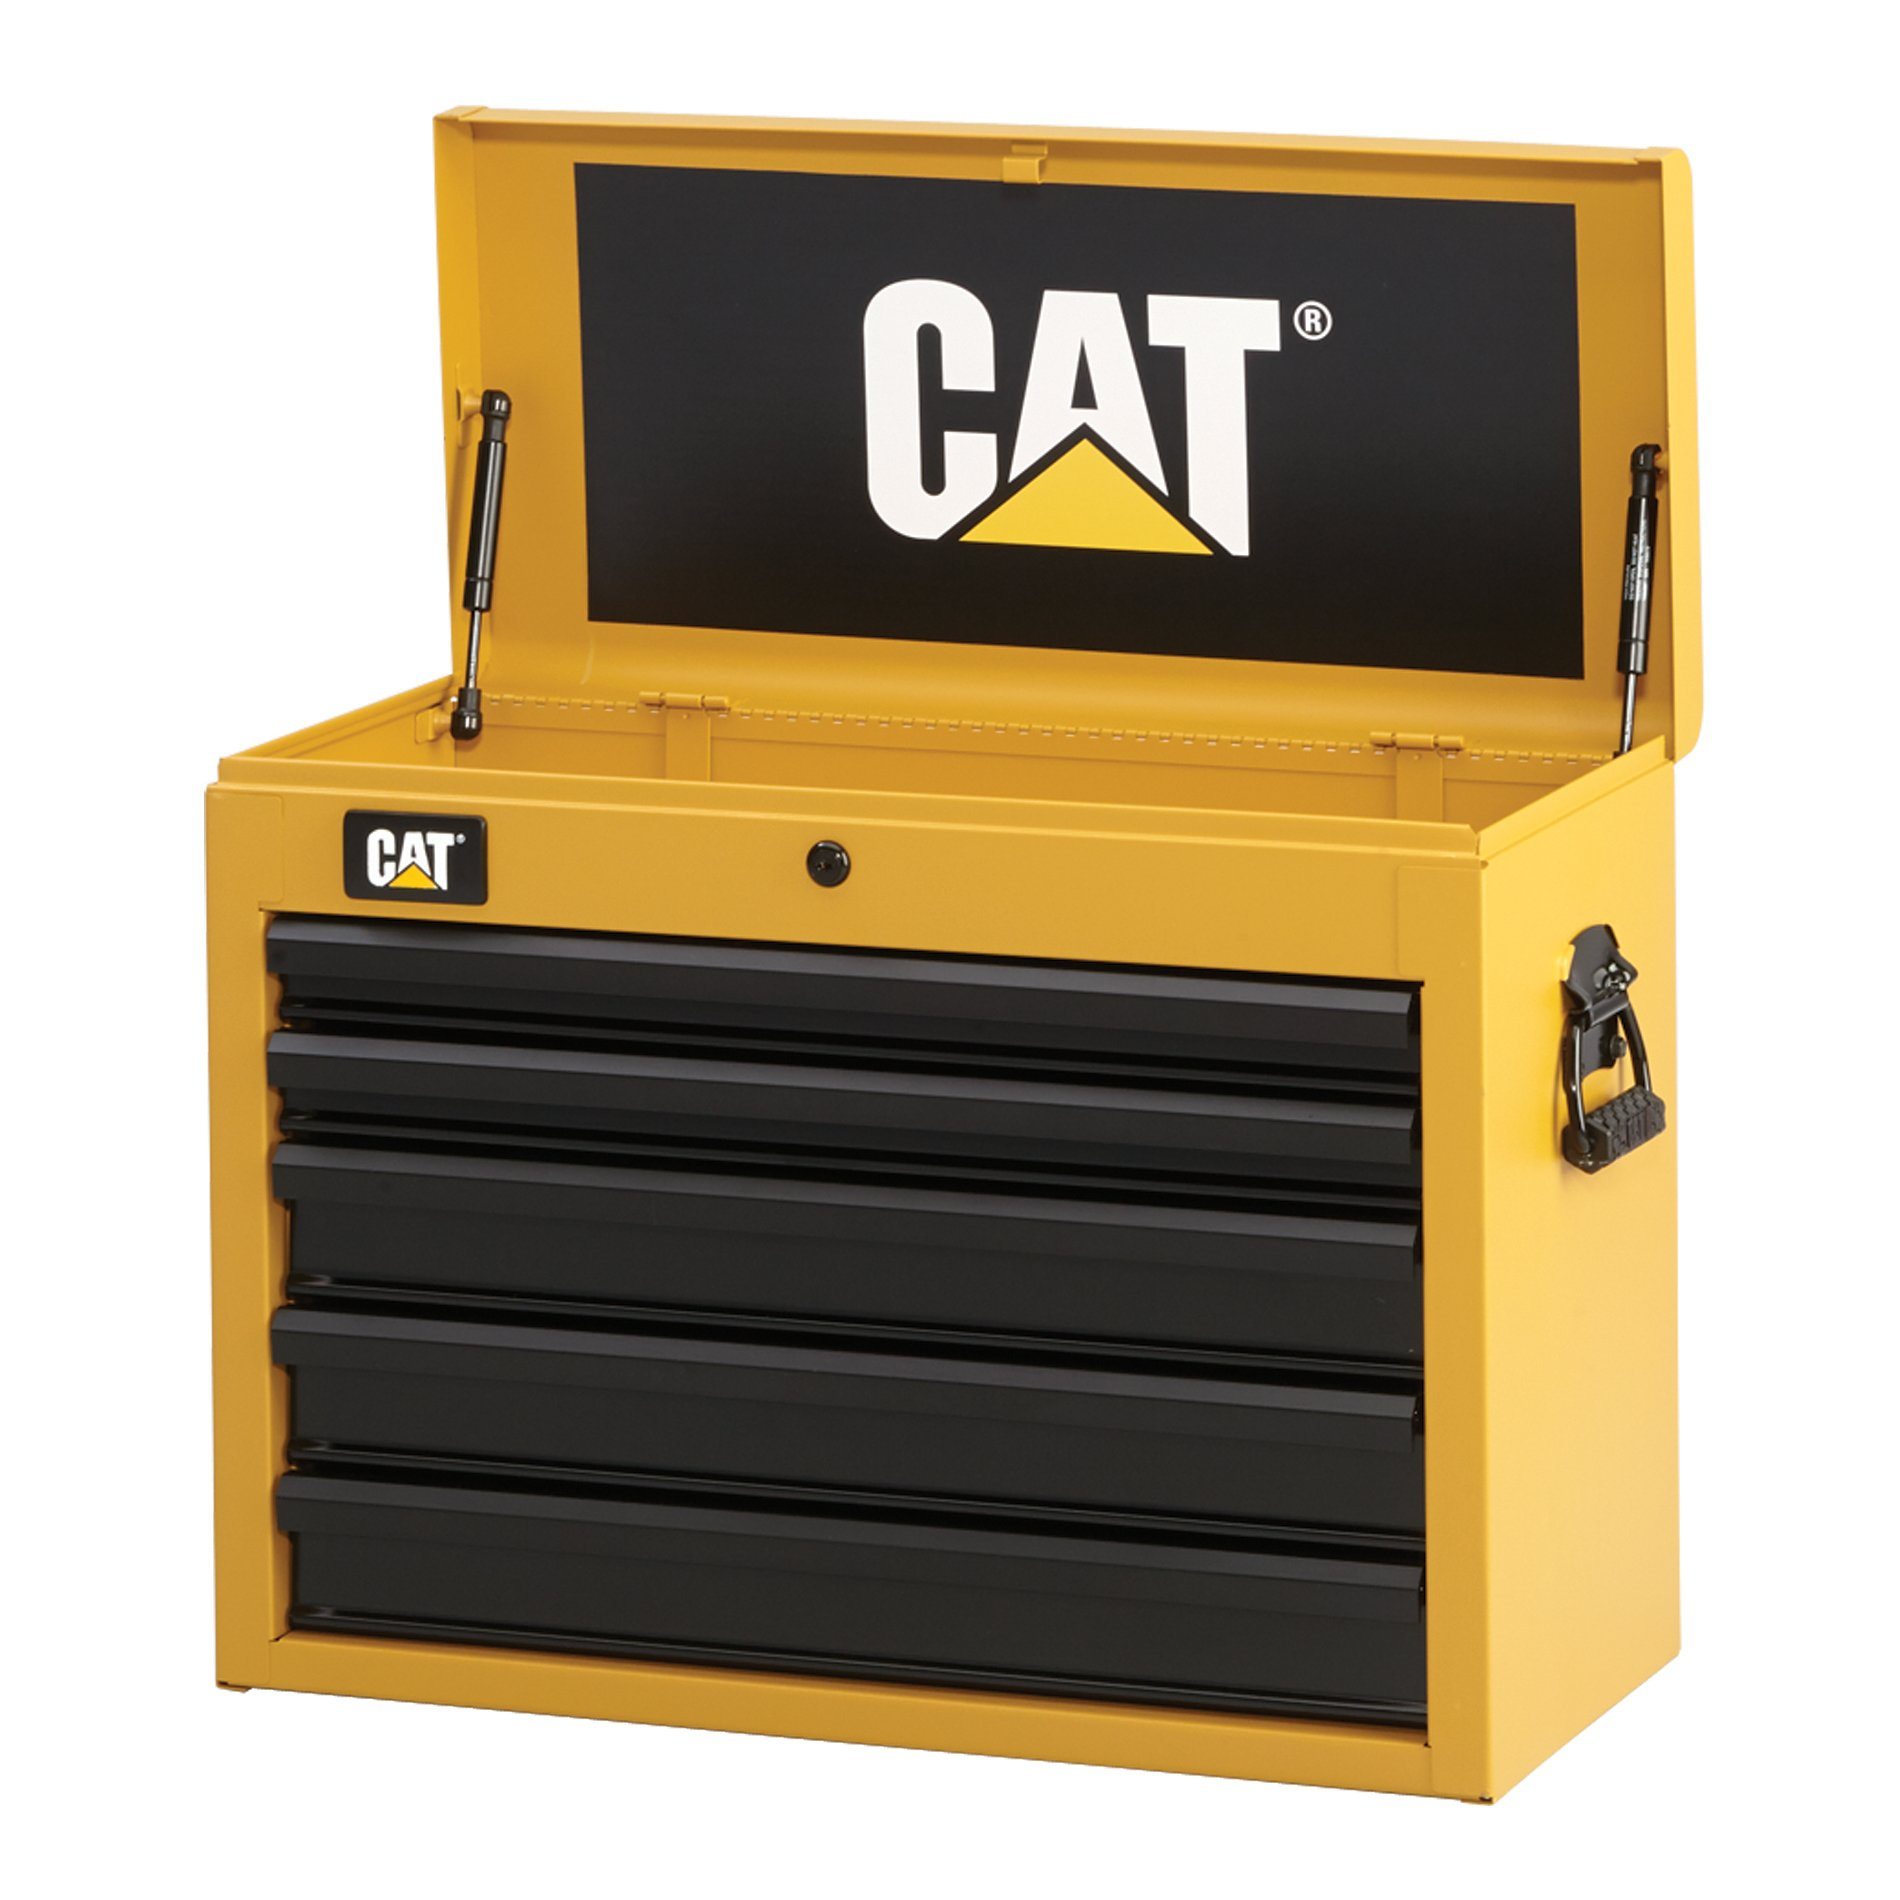 Cat 5-Drawer Ball-Bearing Tool Chest, 26'' W - Designed, Engineered and Assembled in the USA by Cat Tool Storage